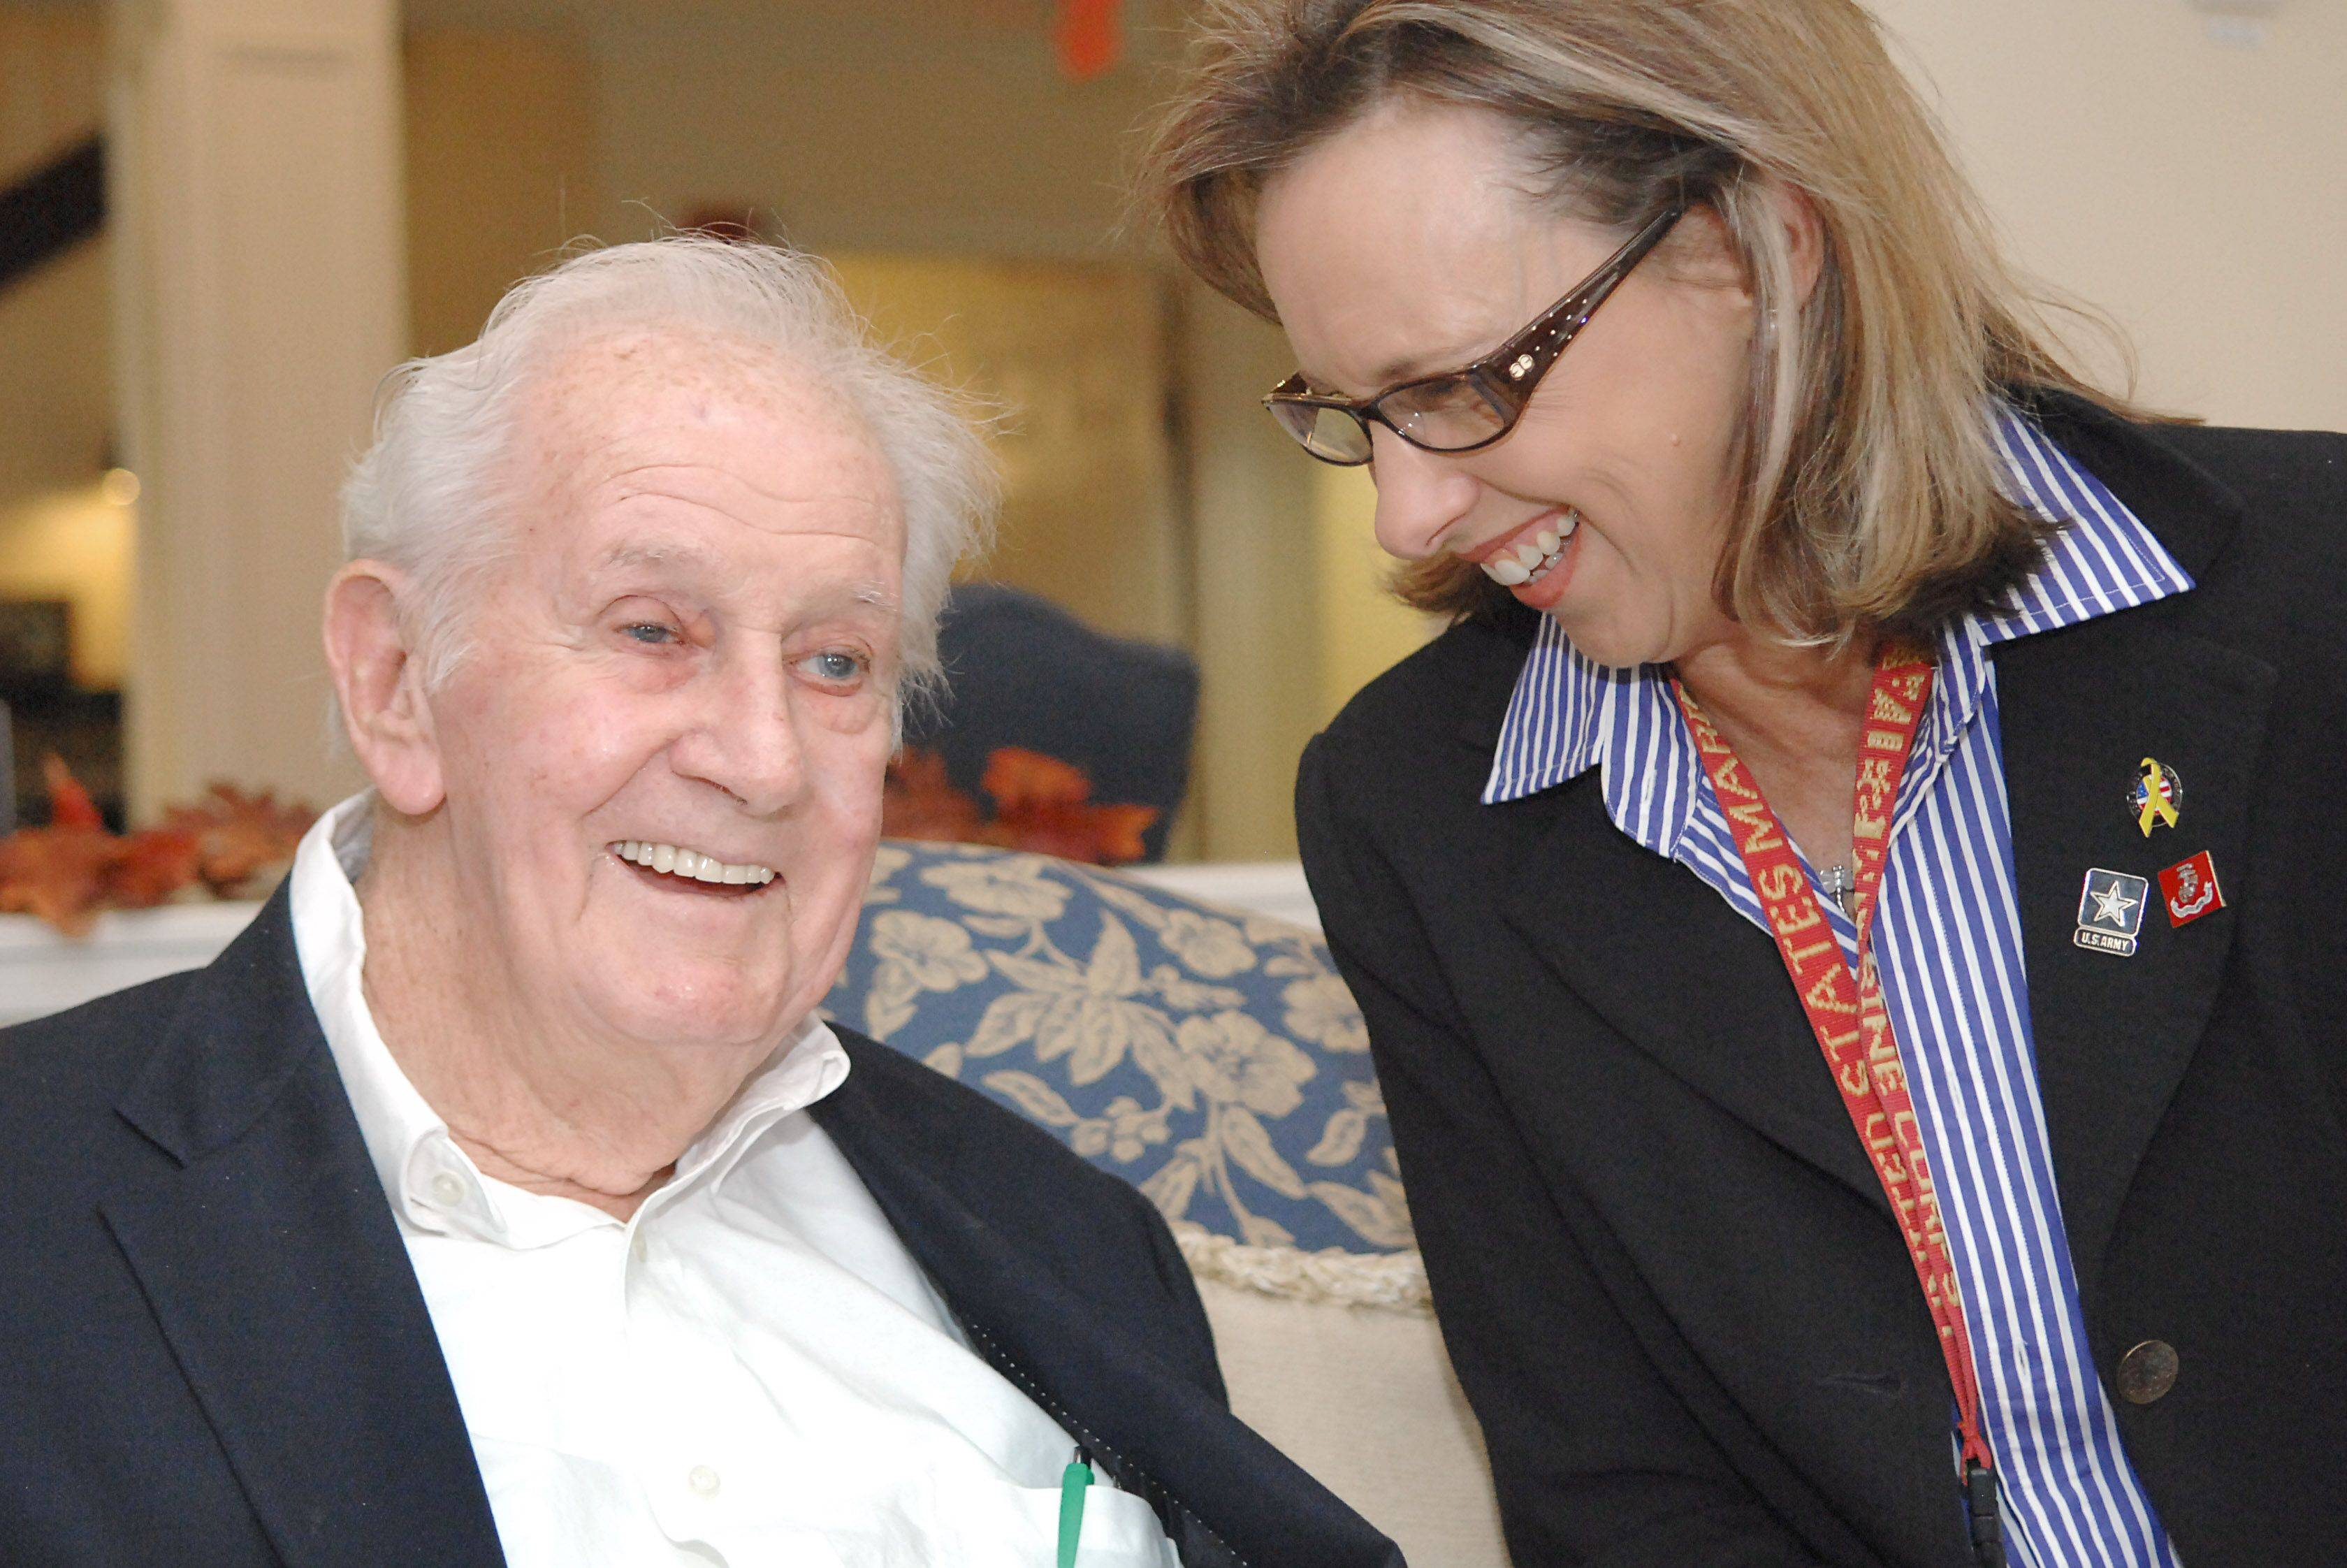 Suburban woman befriends World War II veteran after reading profile on him